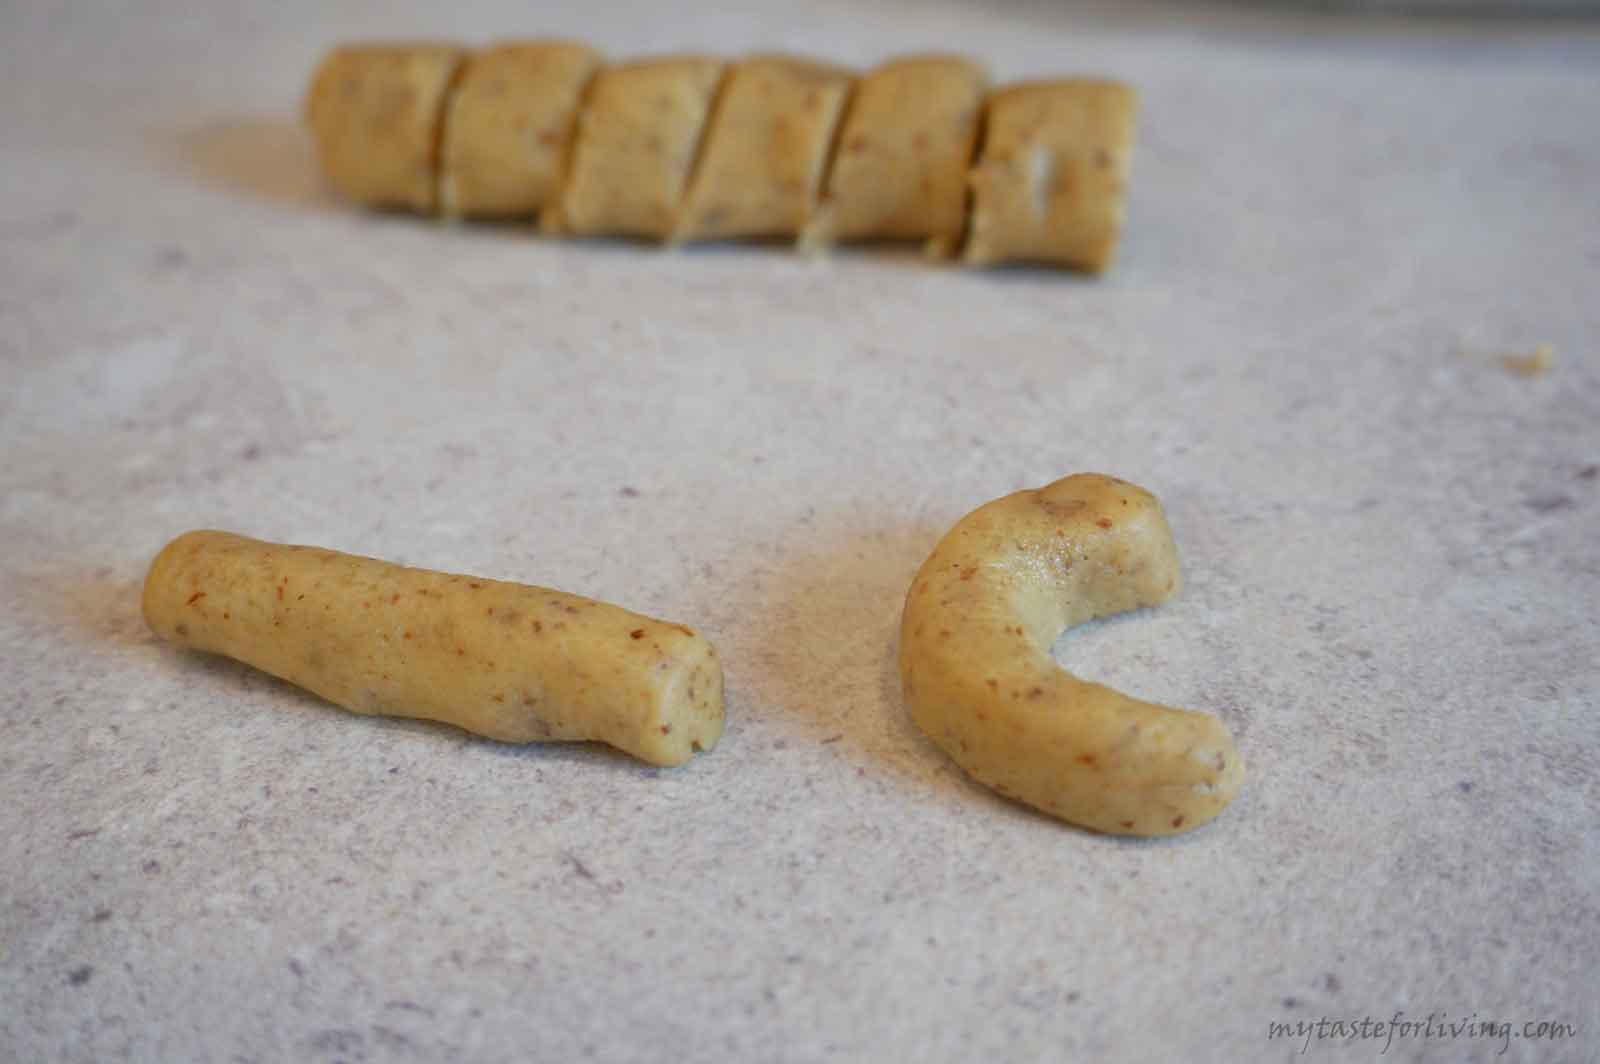 Vanilla walnut crescents are delicious and easy to make cookies. They are prepared with a few ingredients, and the result is delicious and fragrant sweets melting in the mouth. If you choose, you can make them in a different shape or size, and you can replace the walnuts with another type of nuts such as almonds.